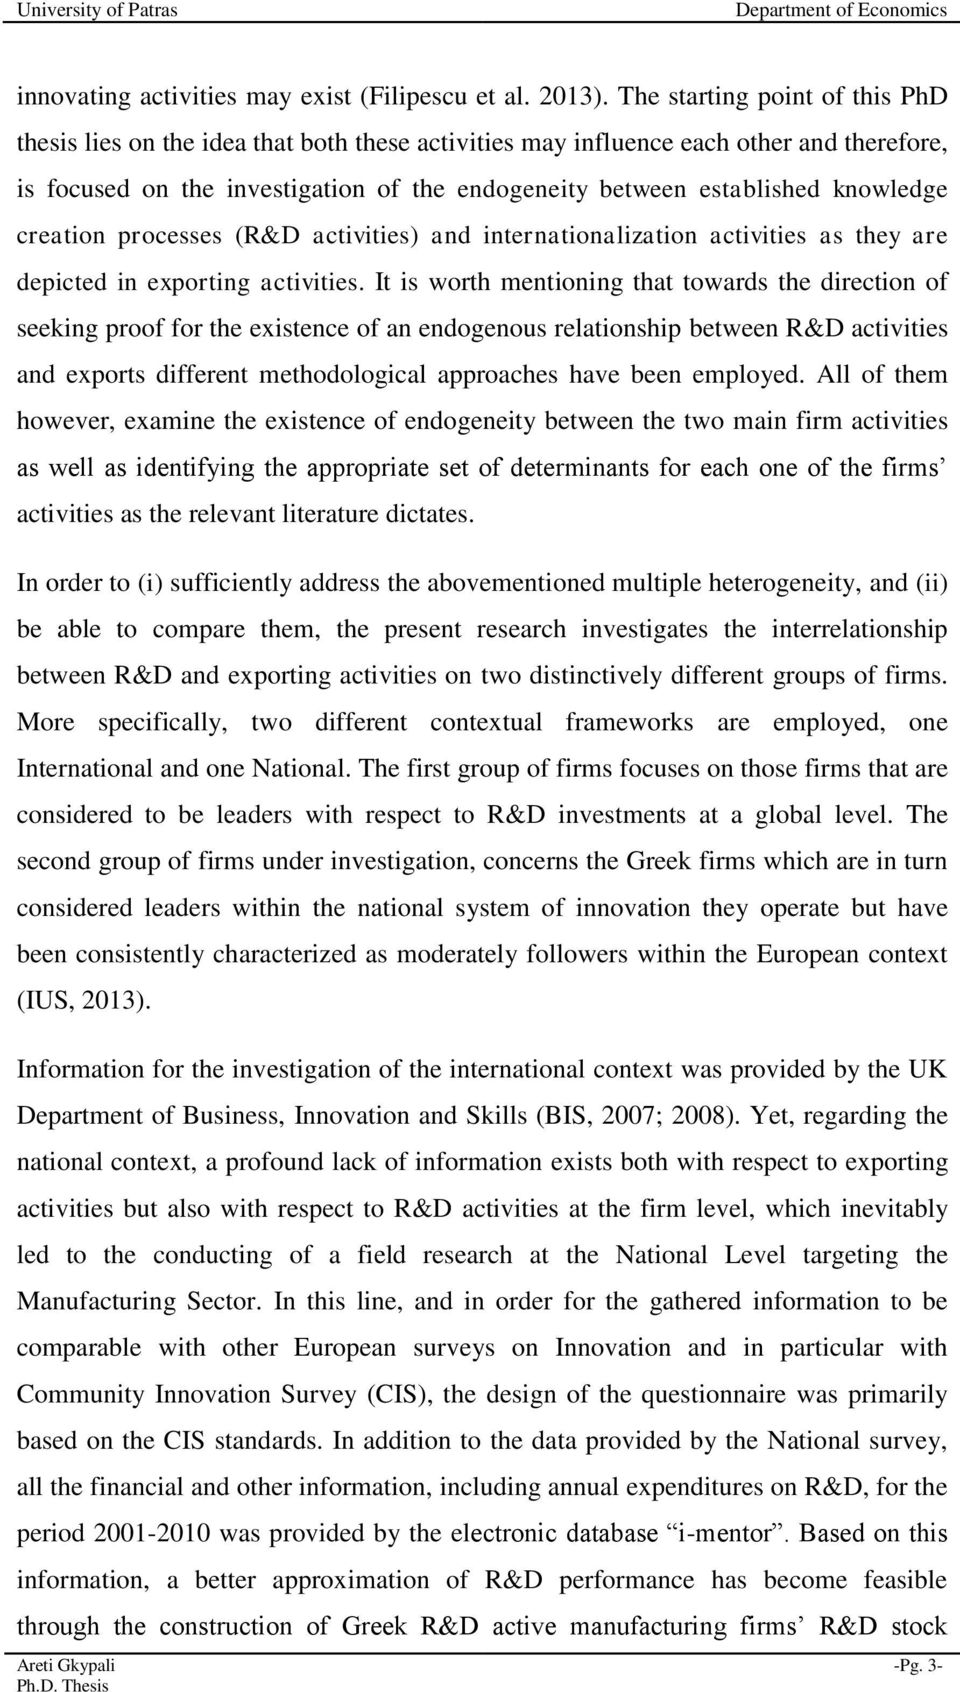 knowledge creation processes (R&D activities) and internationalization activities as they are depicted in exporting activities.